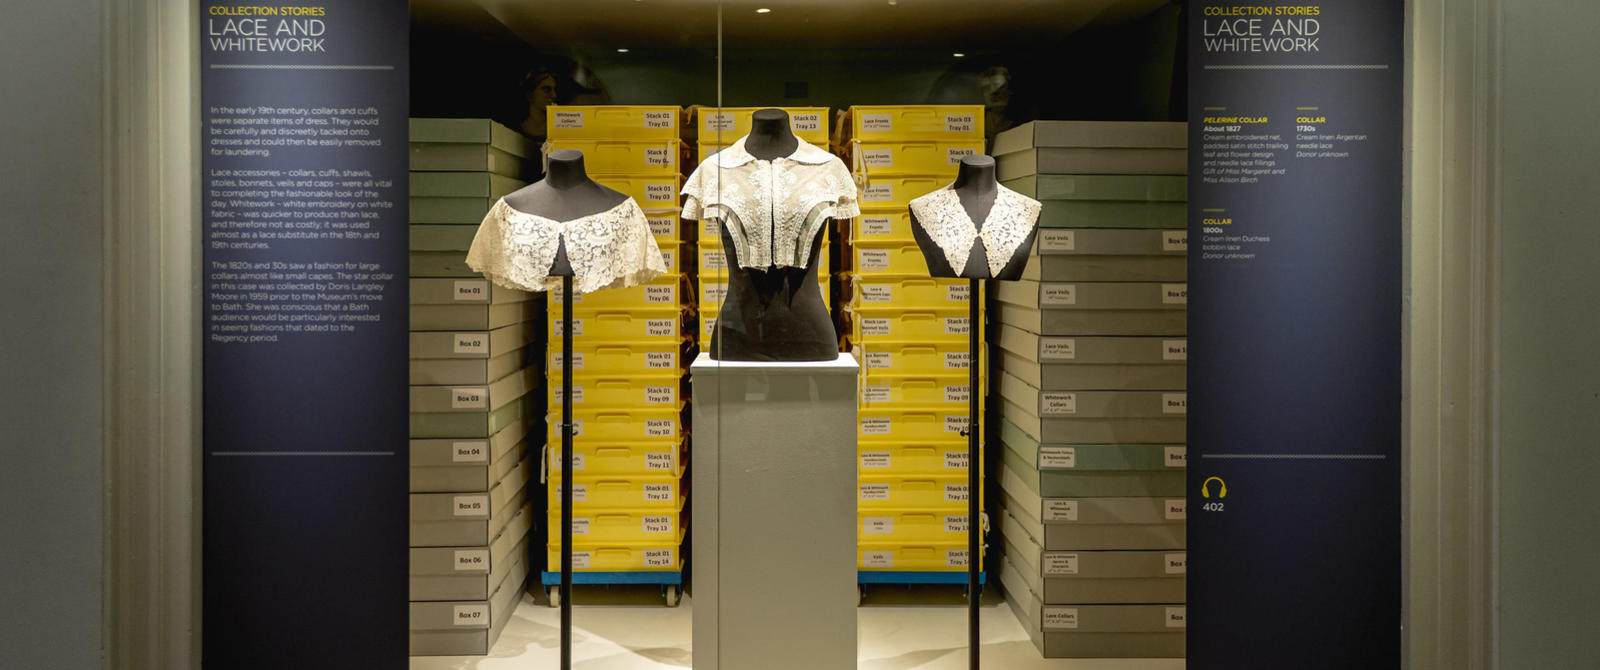 Image: Lace and whitework in Collection Stories